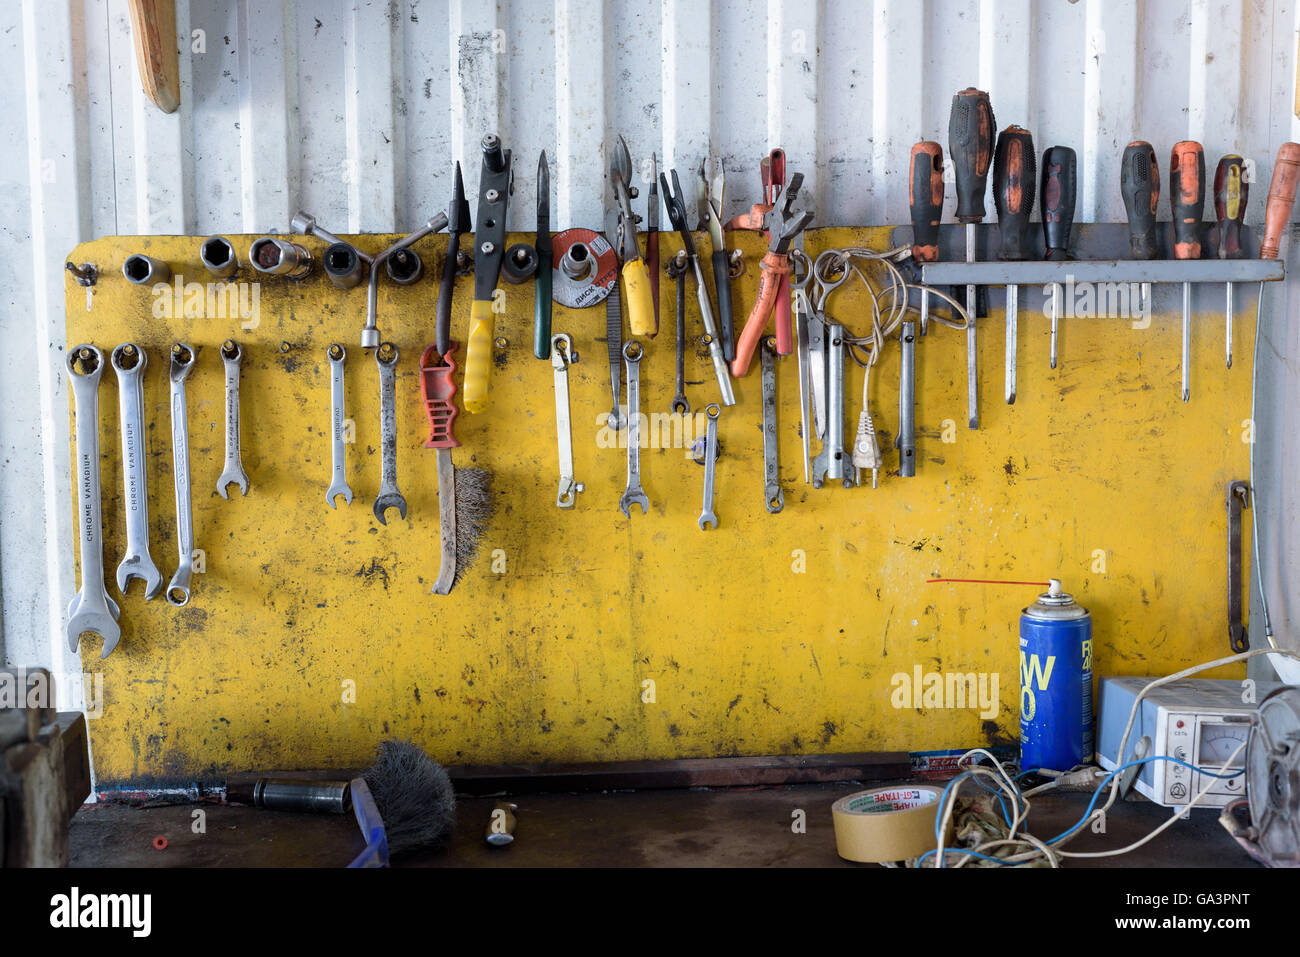 Display of garage work tools on a workbench with nobody - Stock Image